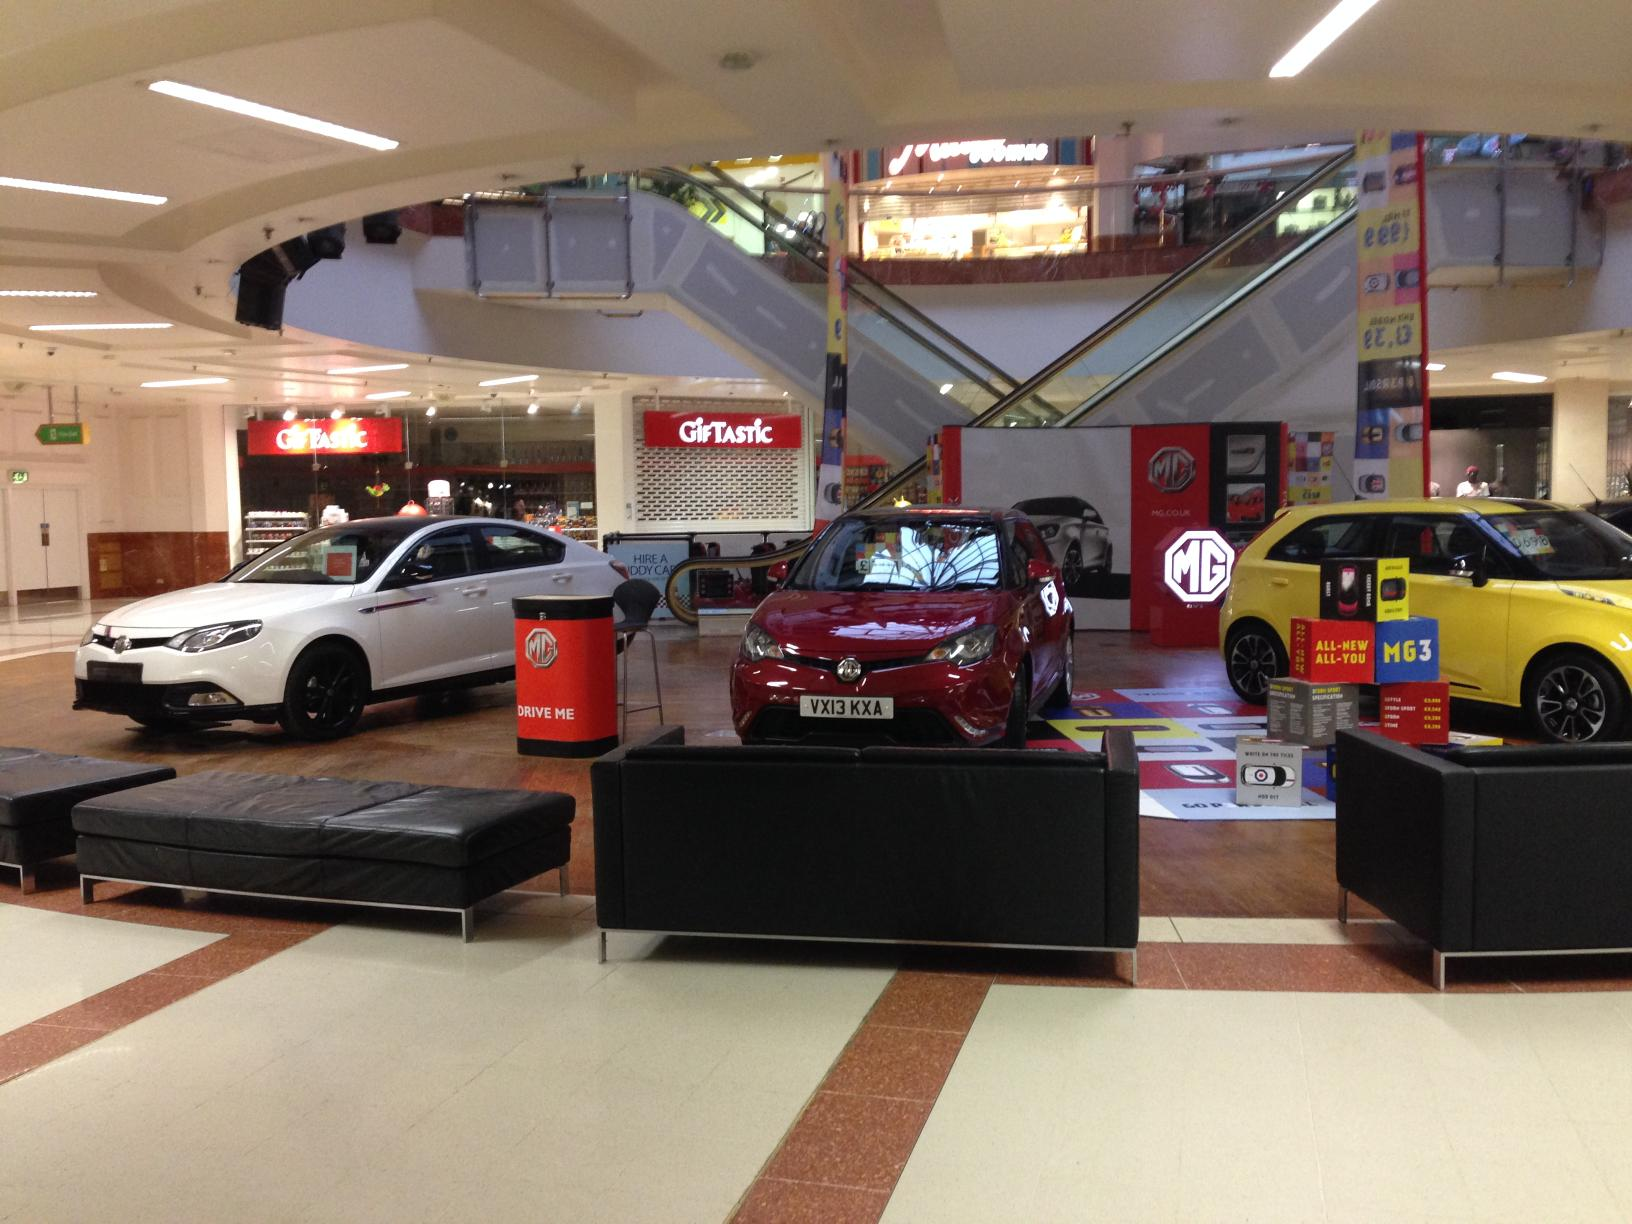 Mg Pop Up Dealership In Merry Hill Mg Car Club